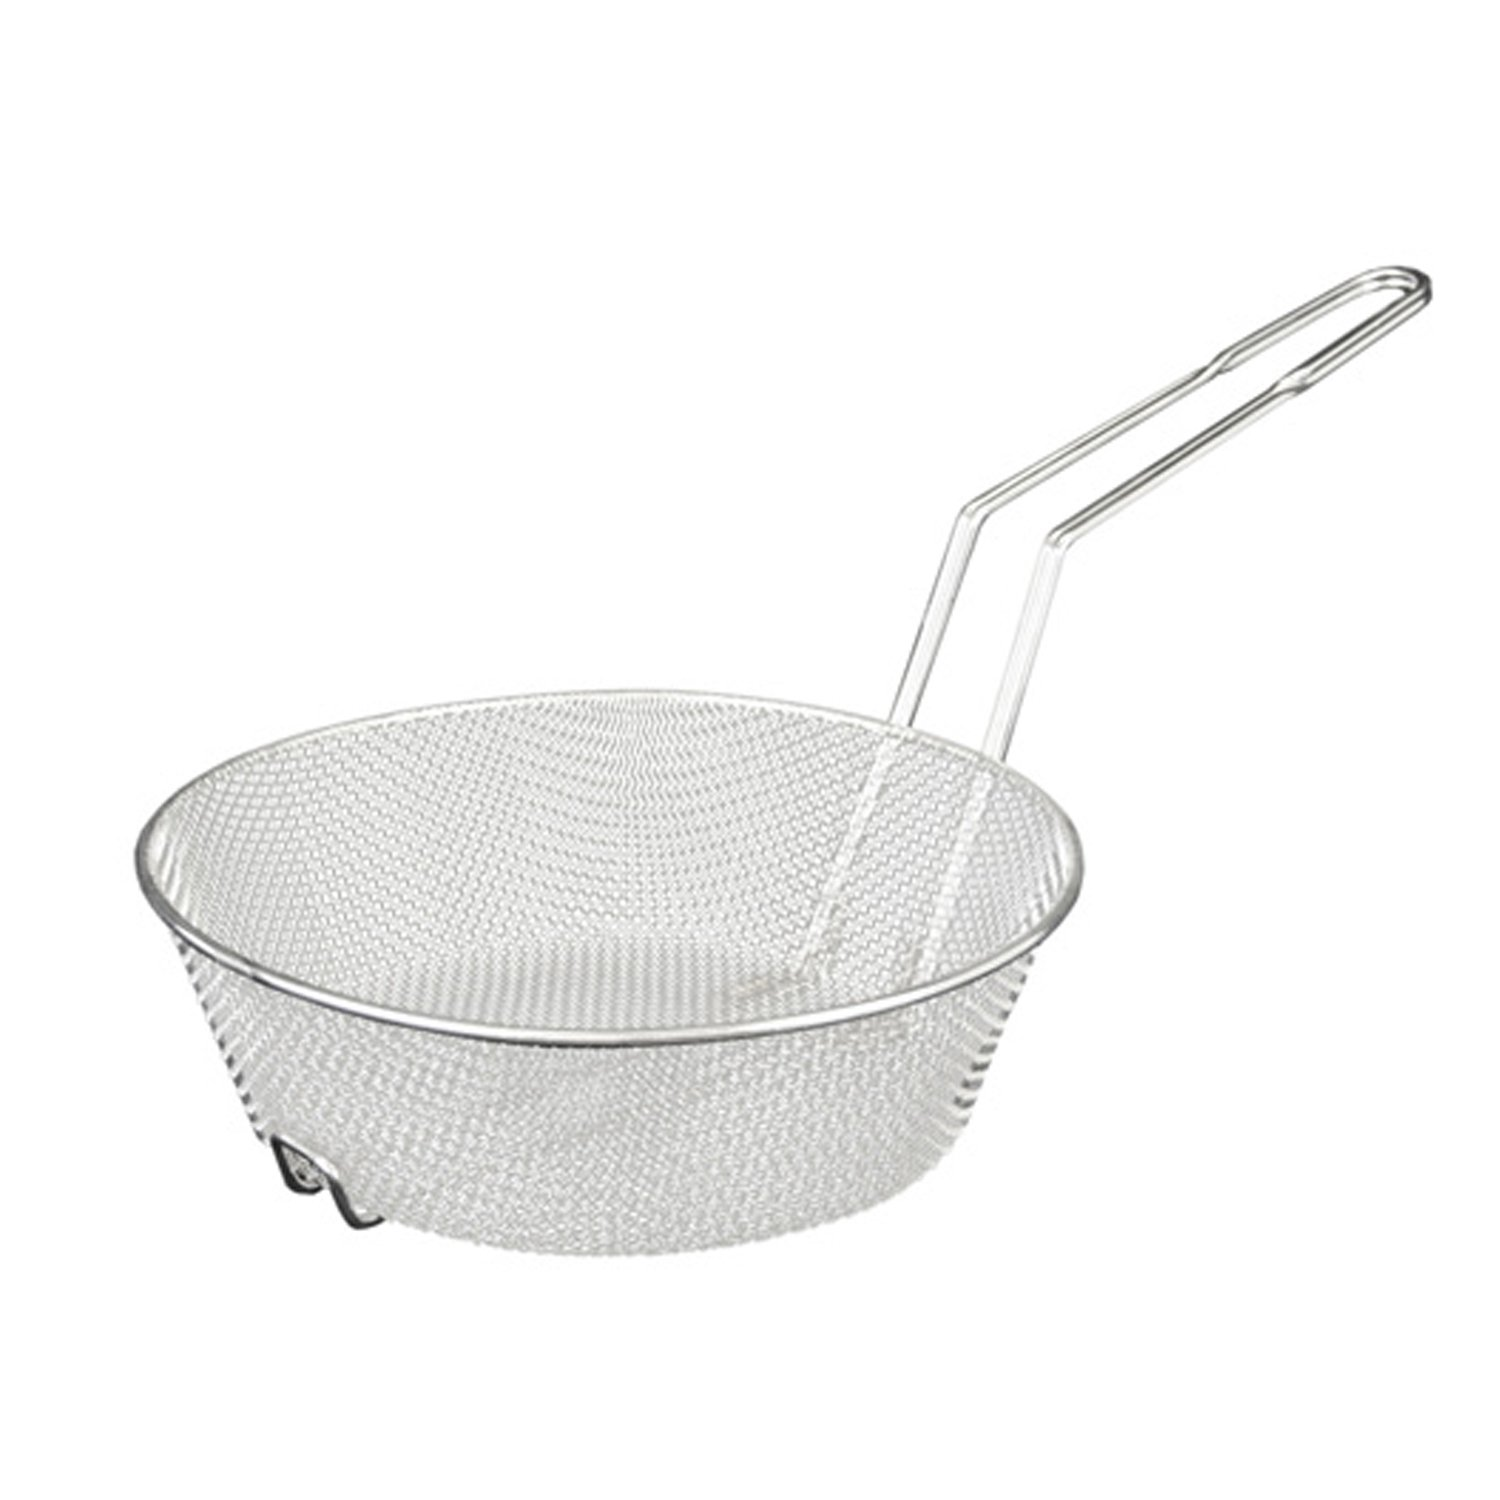 Excellanté 10-Inch Round Nickel Plated Culinary Basket, Medium Mesh